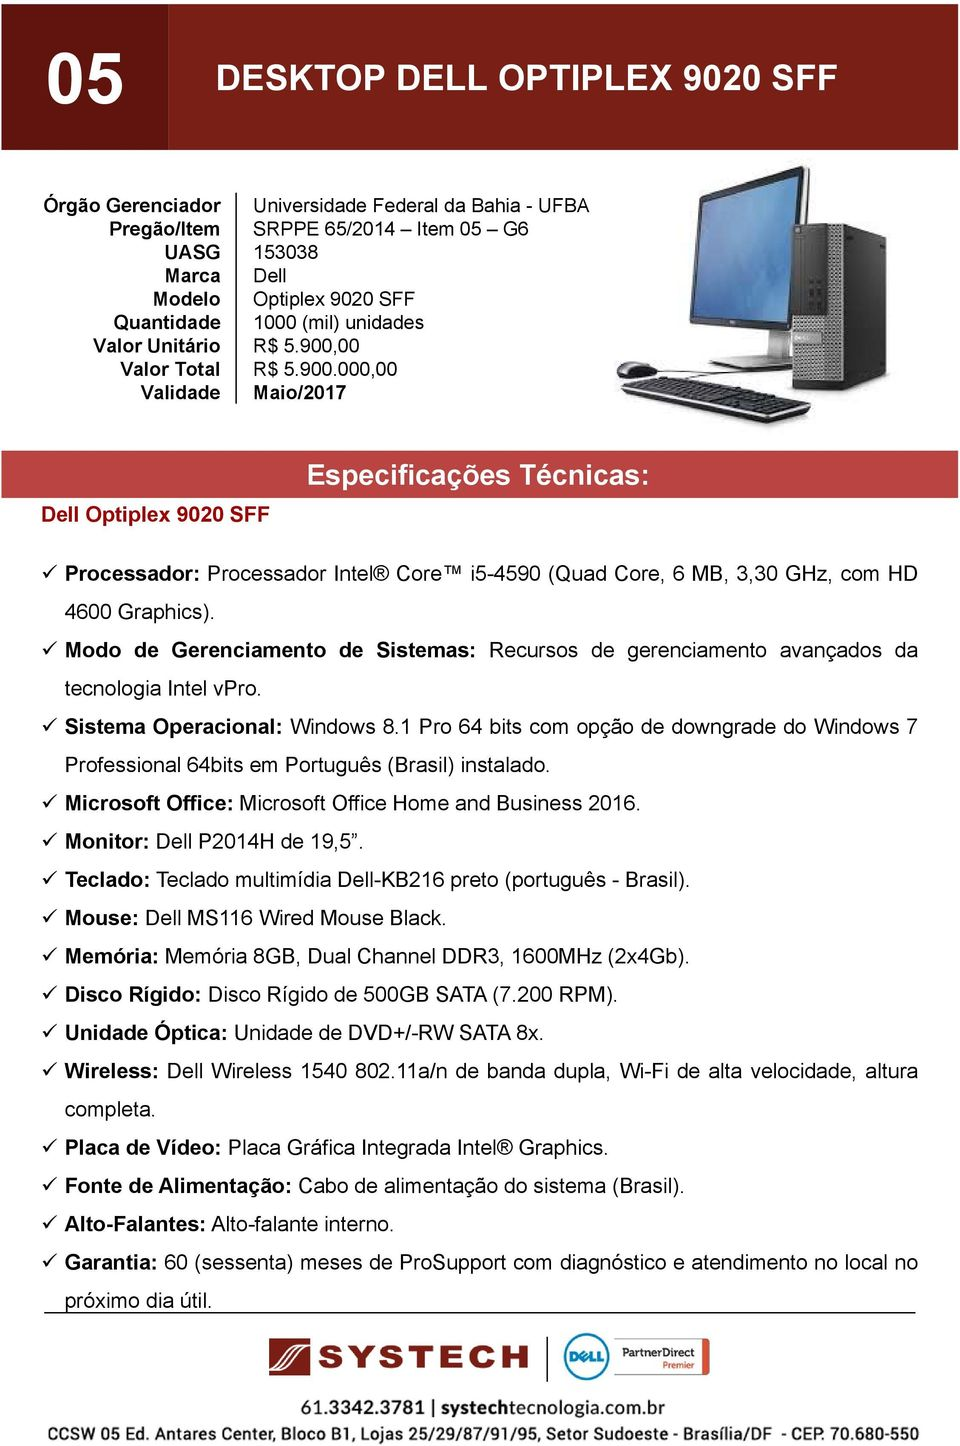 1 Pro 64 bits com opção de downgrade do Windows 7 Microsoft Office: Microsoft Office Home and Business 2016. Monitor: P2014H de 19,5. Teclado: Teclado multimídia -KB216 preto (português - Brasil).